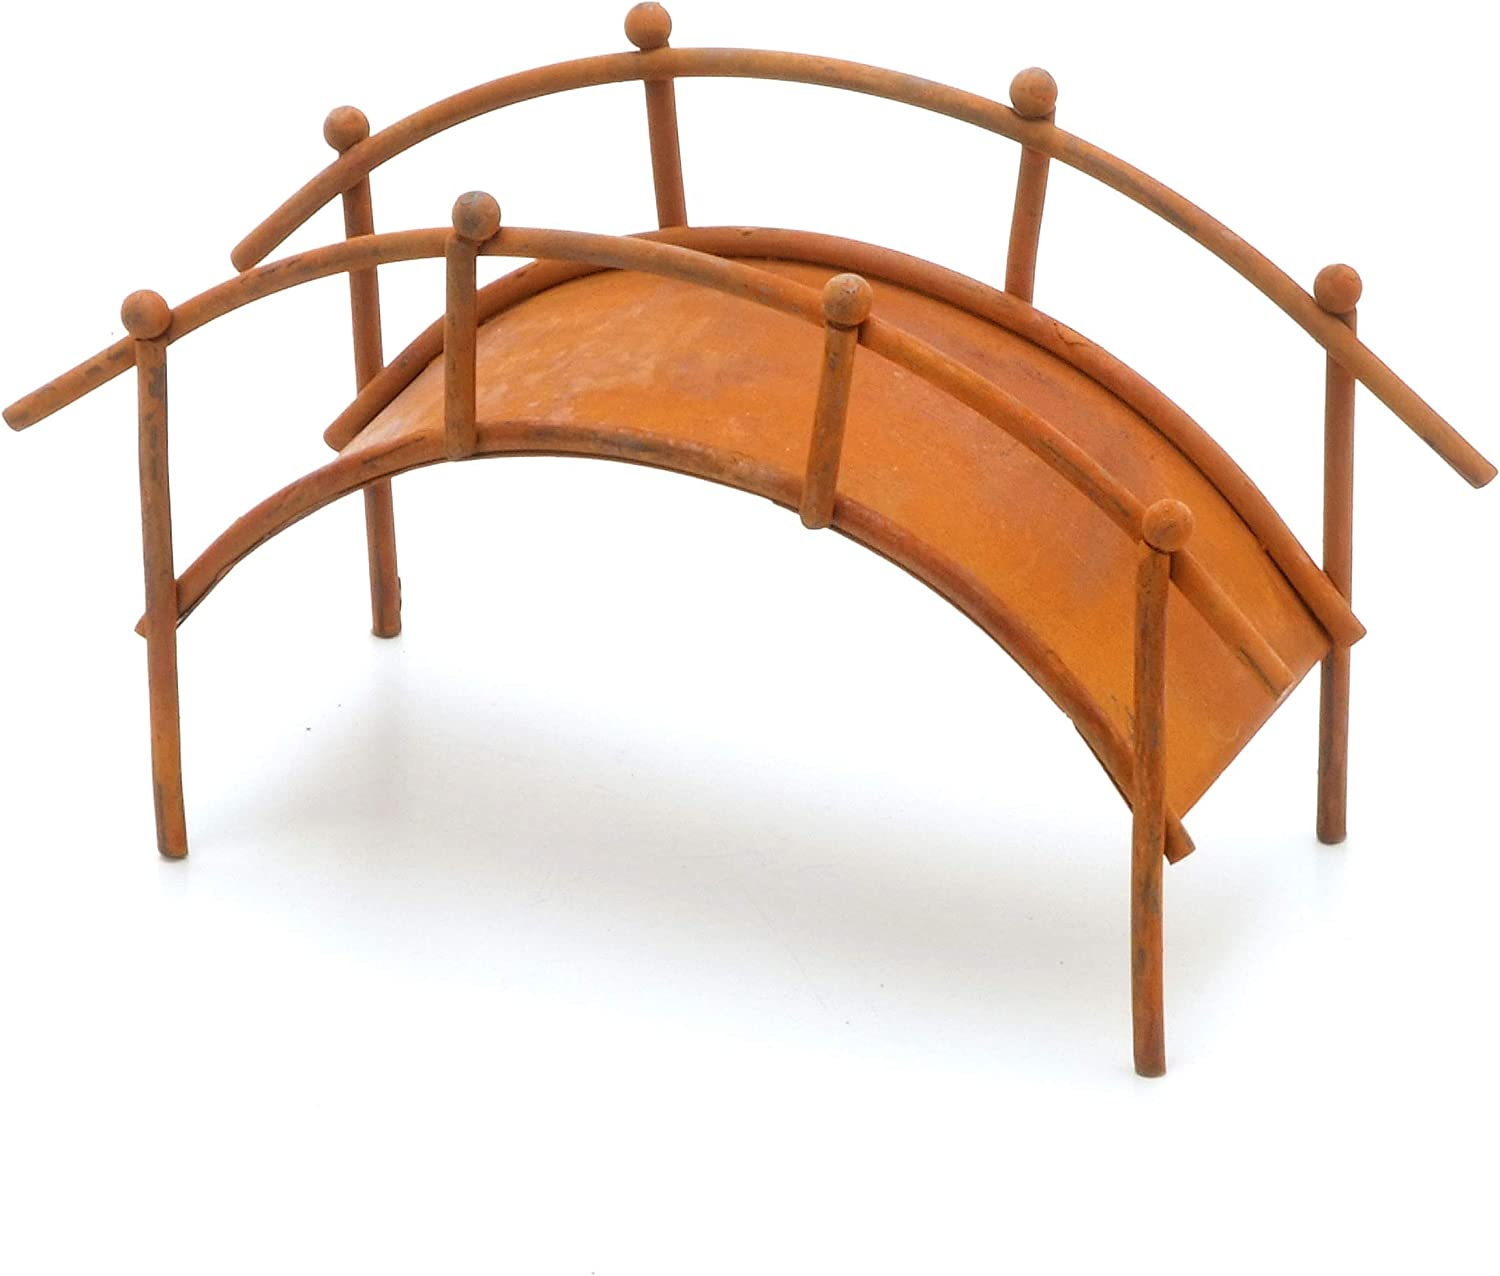 Darice Mini Bridge with Handrail, Rustic Finish